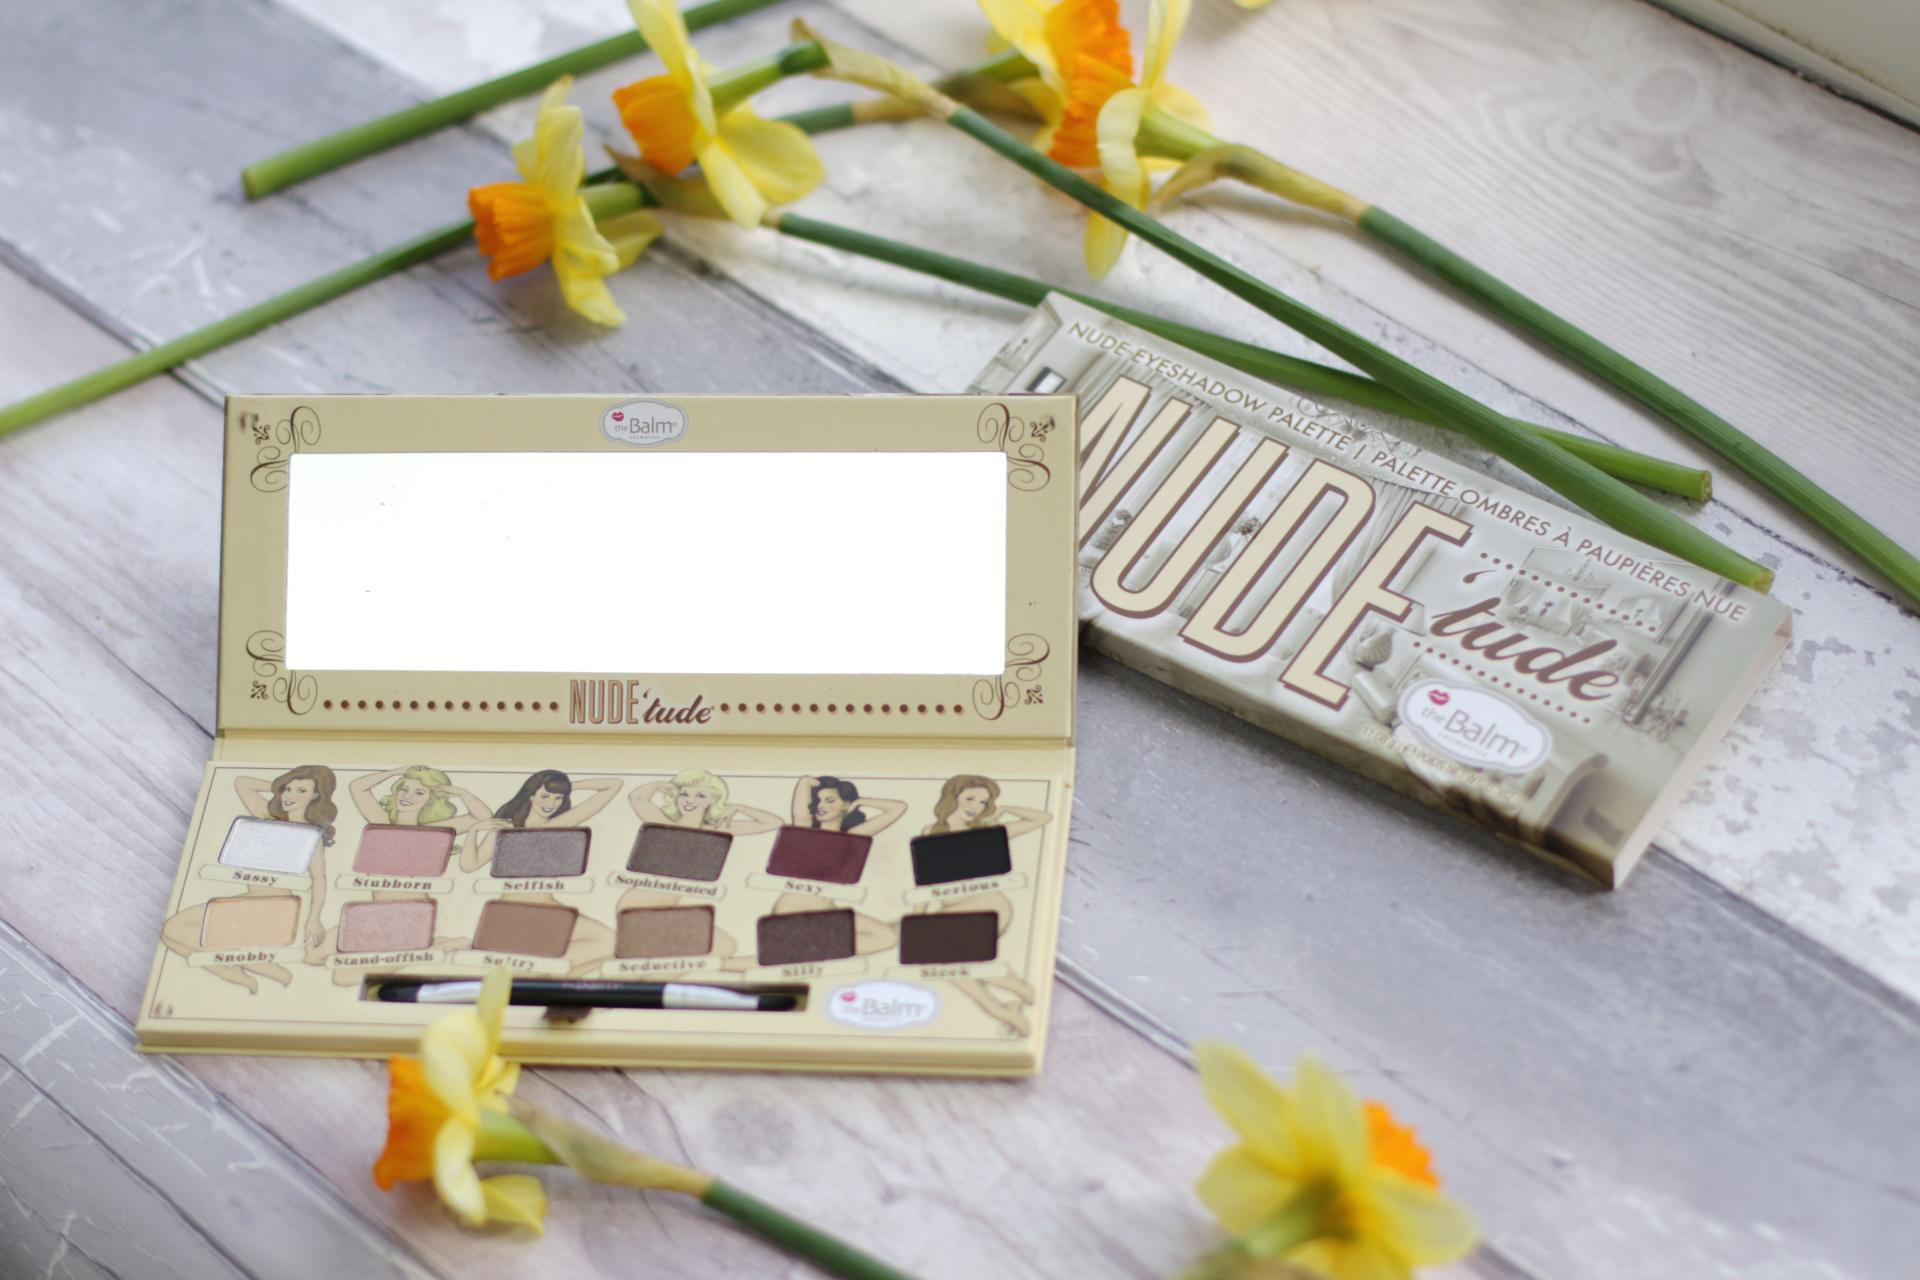 TheBalm Nude'tude Eyeshadow Palette Review and Swatches